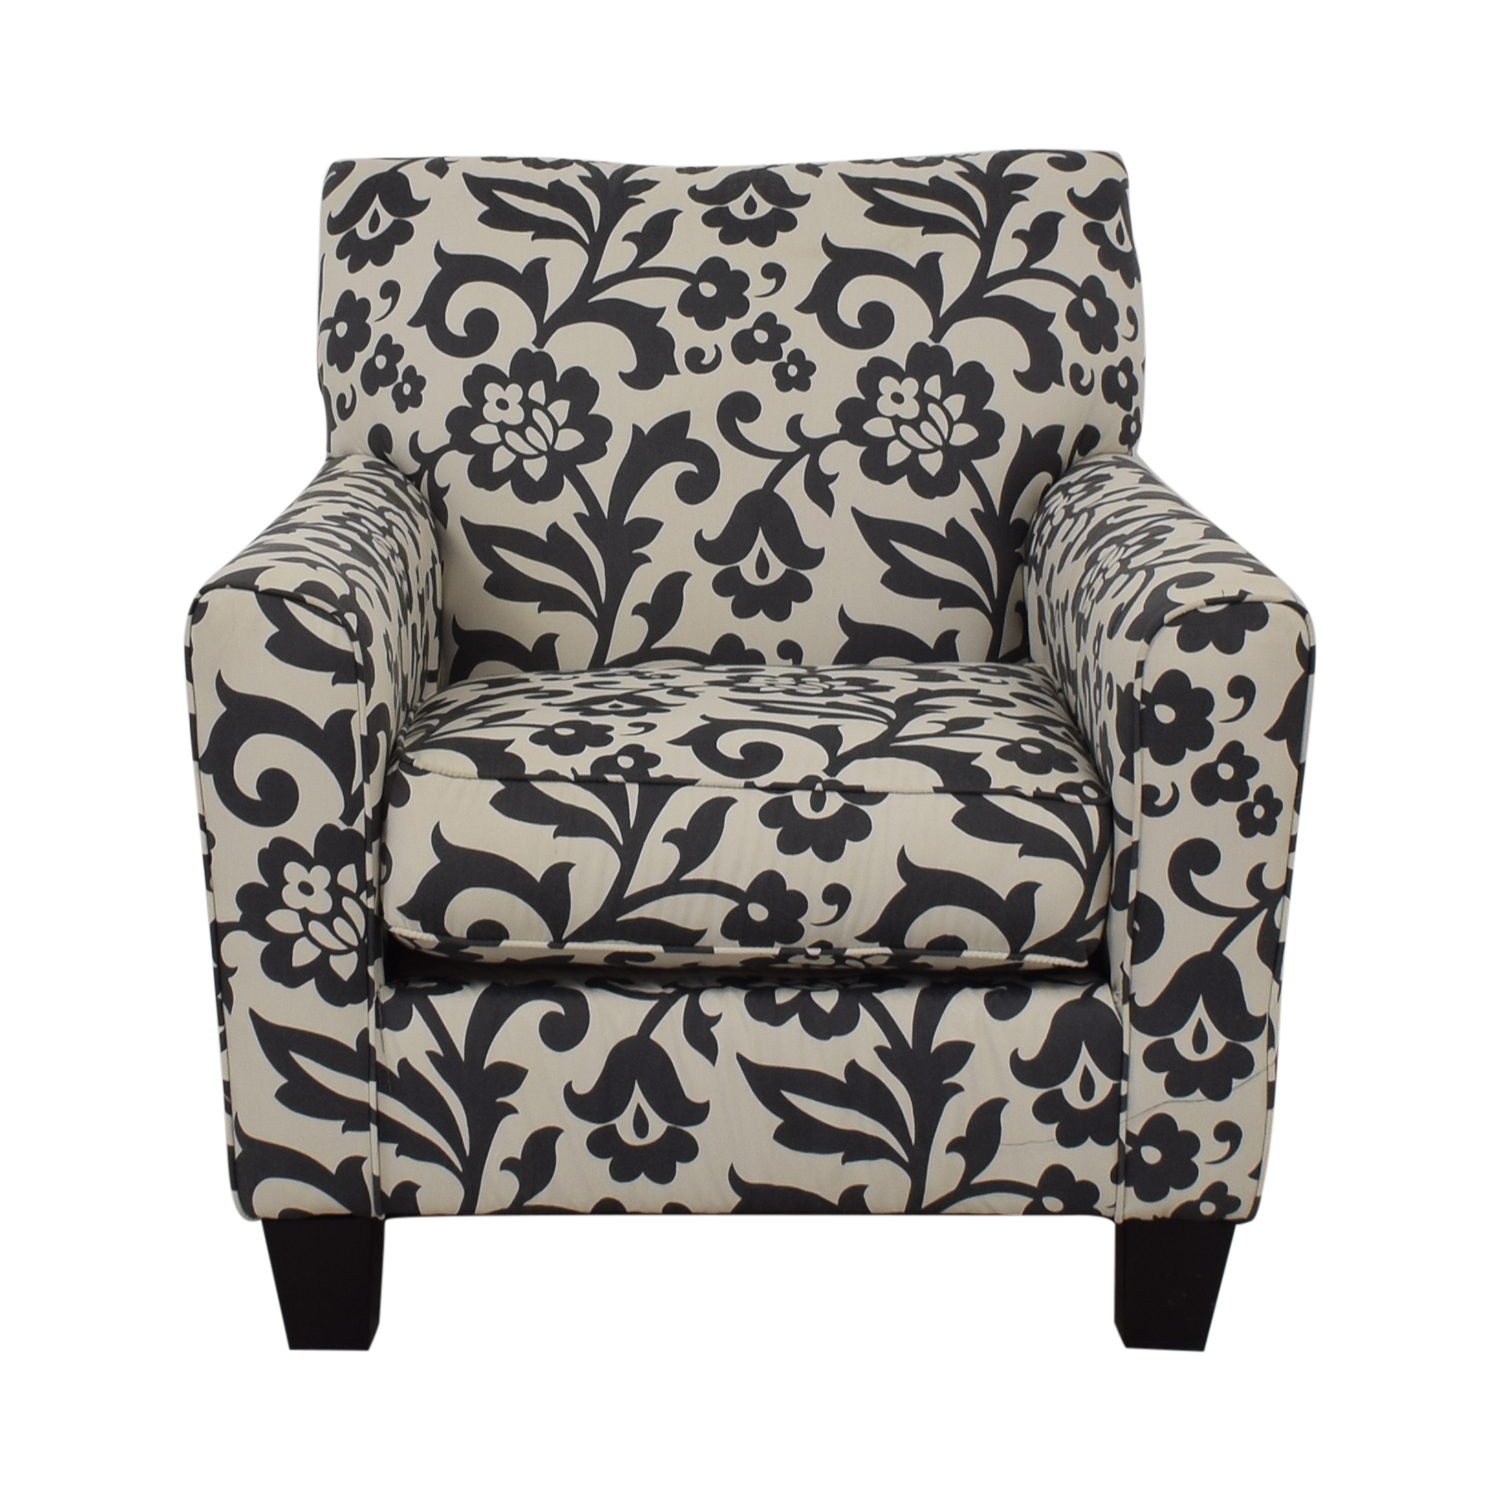 buy Ashley Furniture Ashley Furniture Floral Armchair online